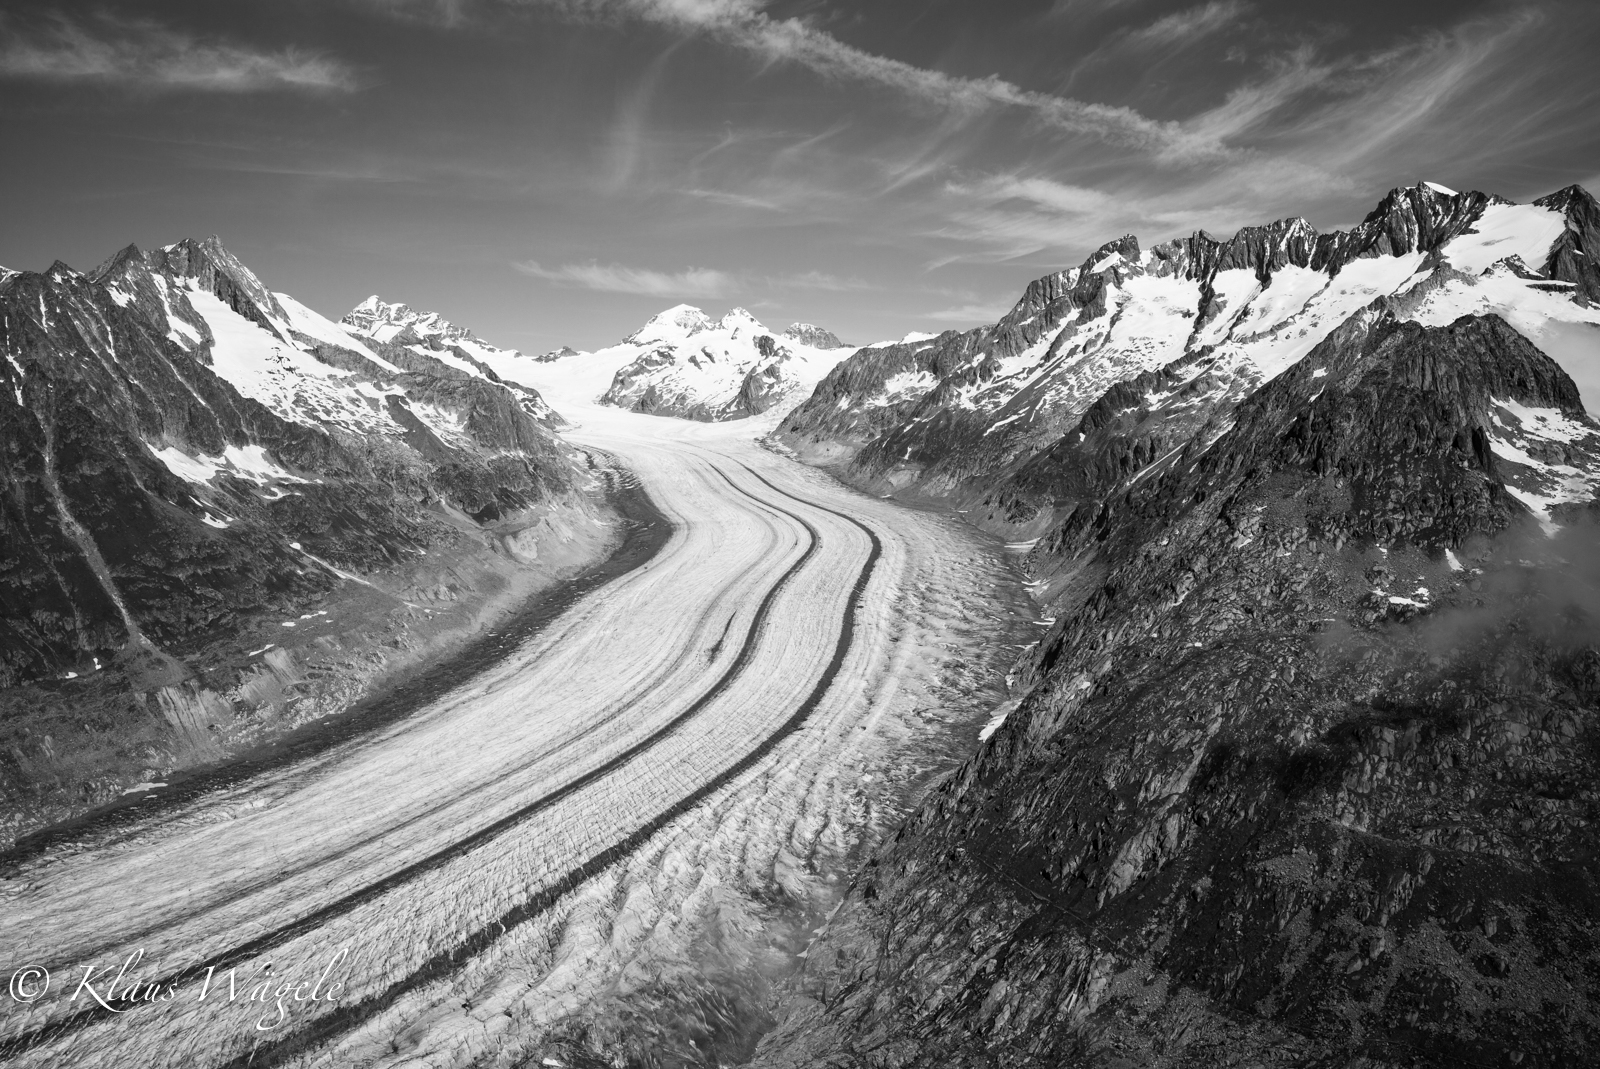 Glacier Aletsch (Switzerland)